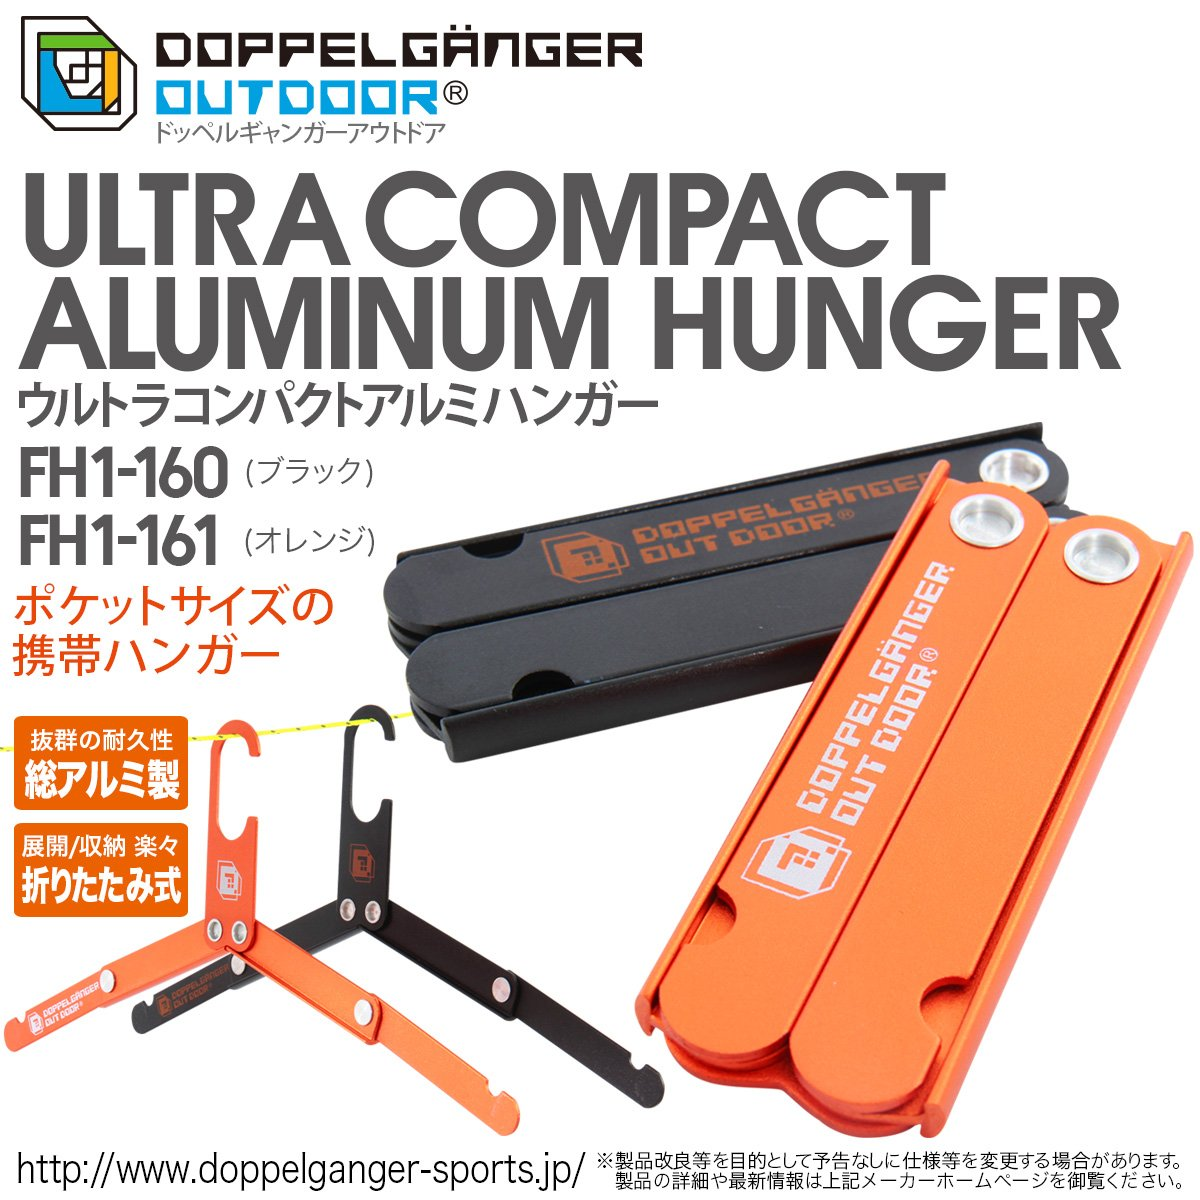 Doppelganger Travel Outdoor Folding Portable Ultra Compact Aluminum Durable Hanger Fh1-160 (Black) by Doppelganger (Image #2)